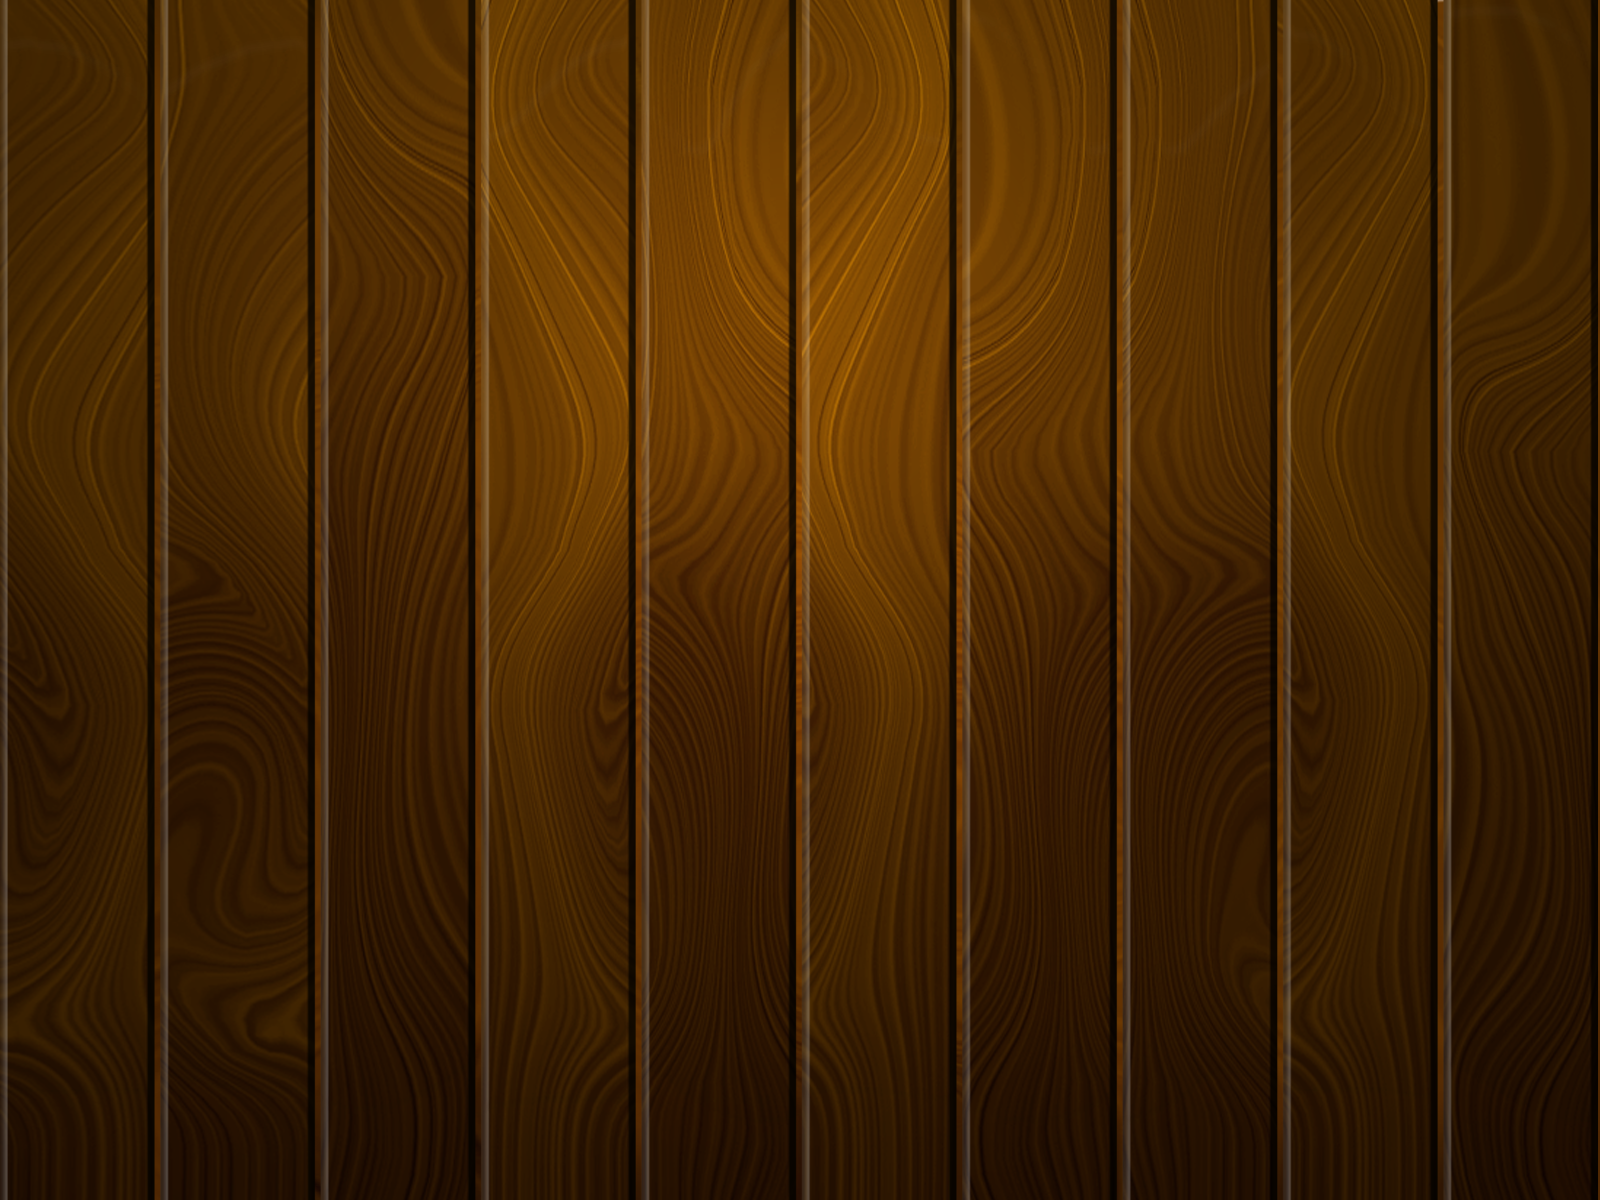 Wooden photoshop background png #24702.